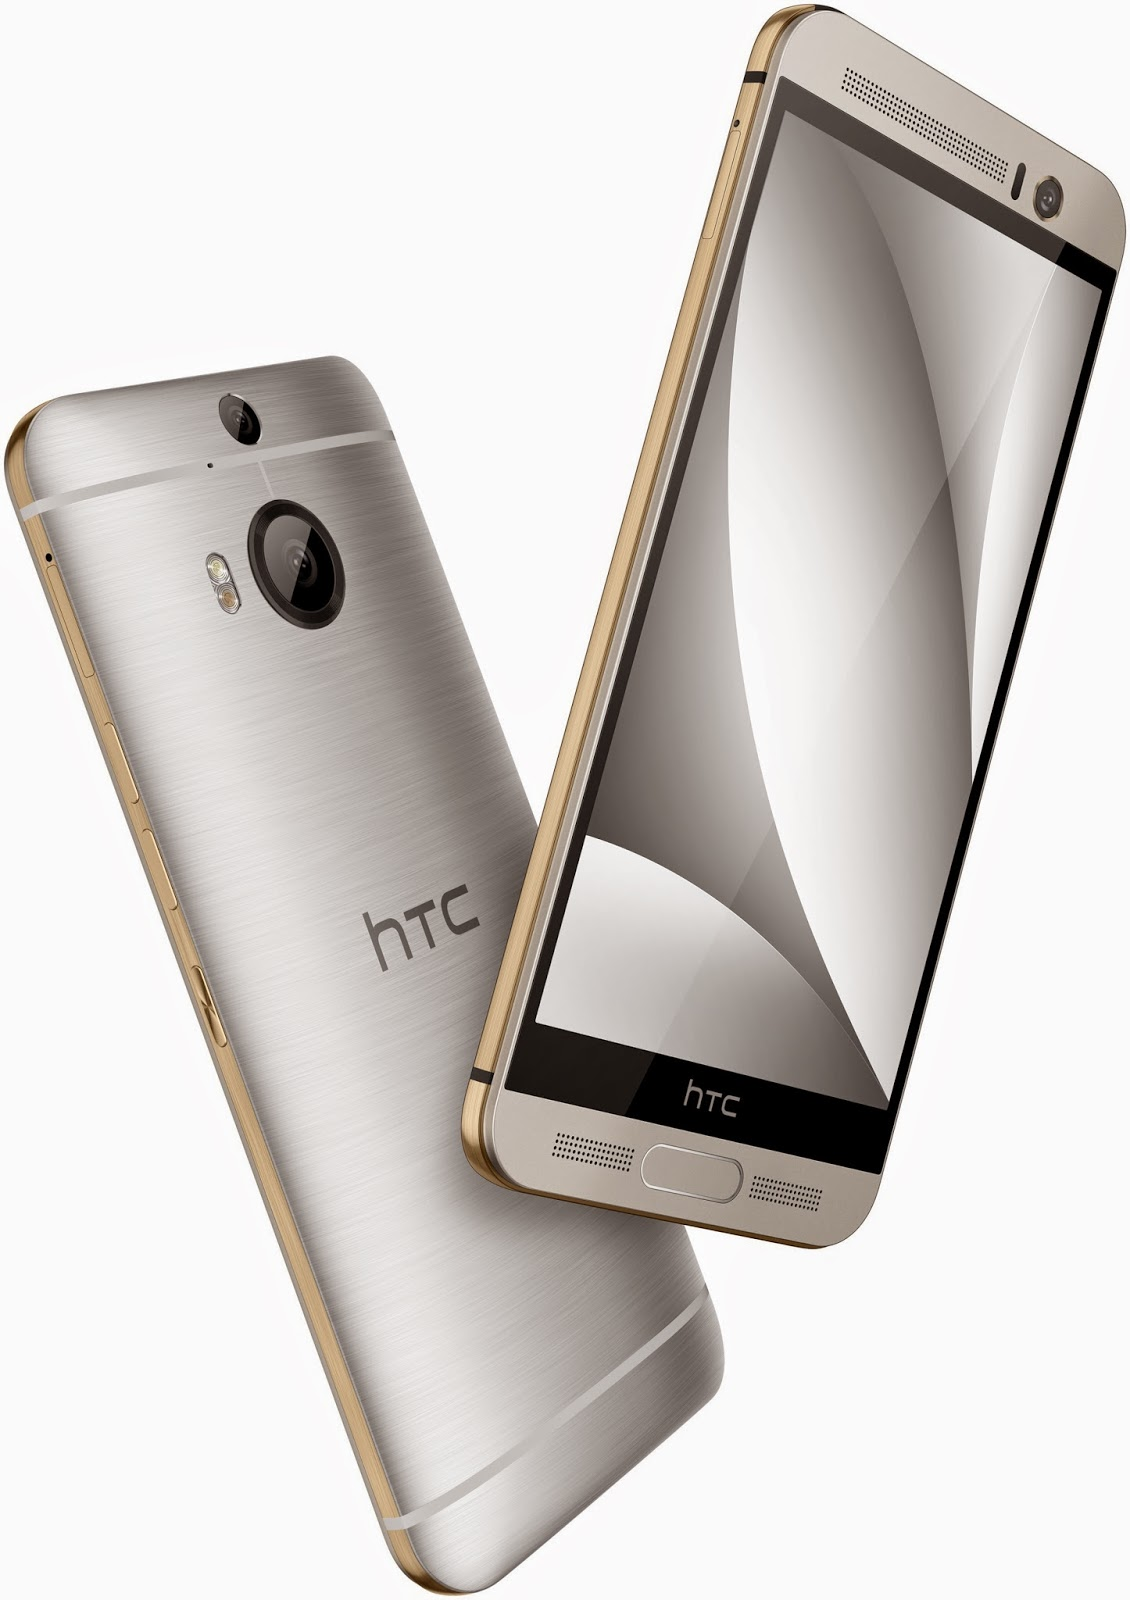 HTC One M9+, smartphone, duo camera, HTC, byrawlins, Dolby Audio